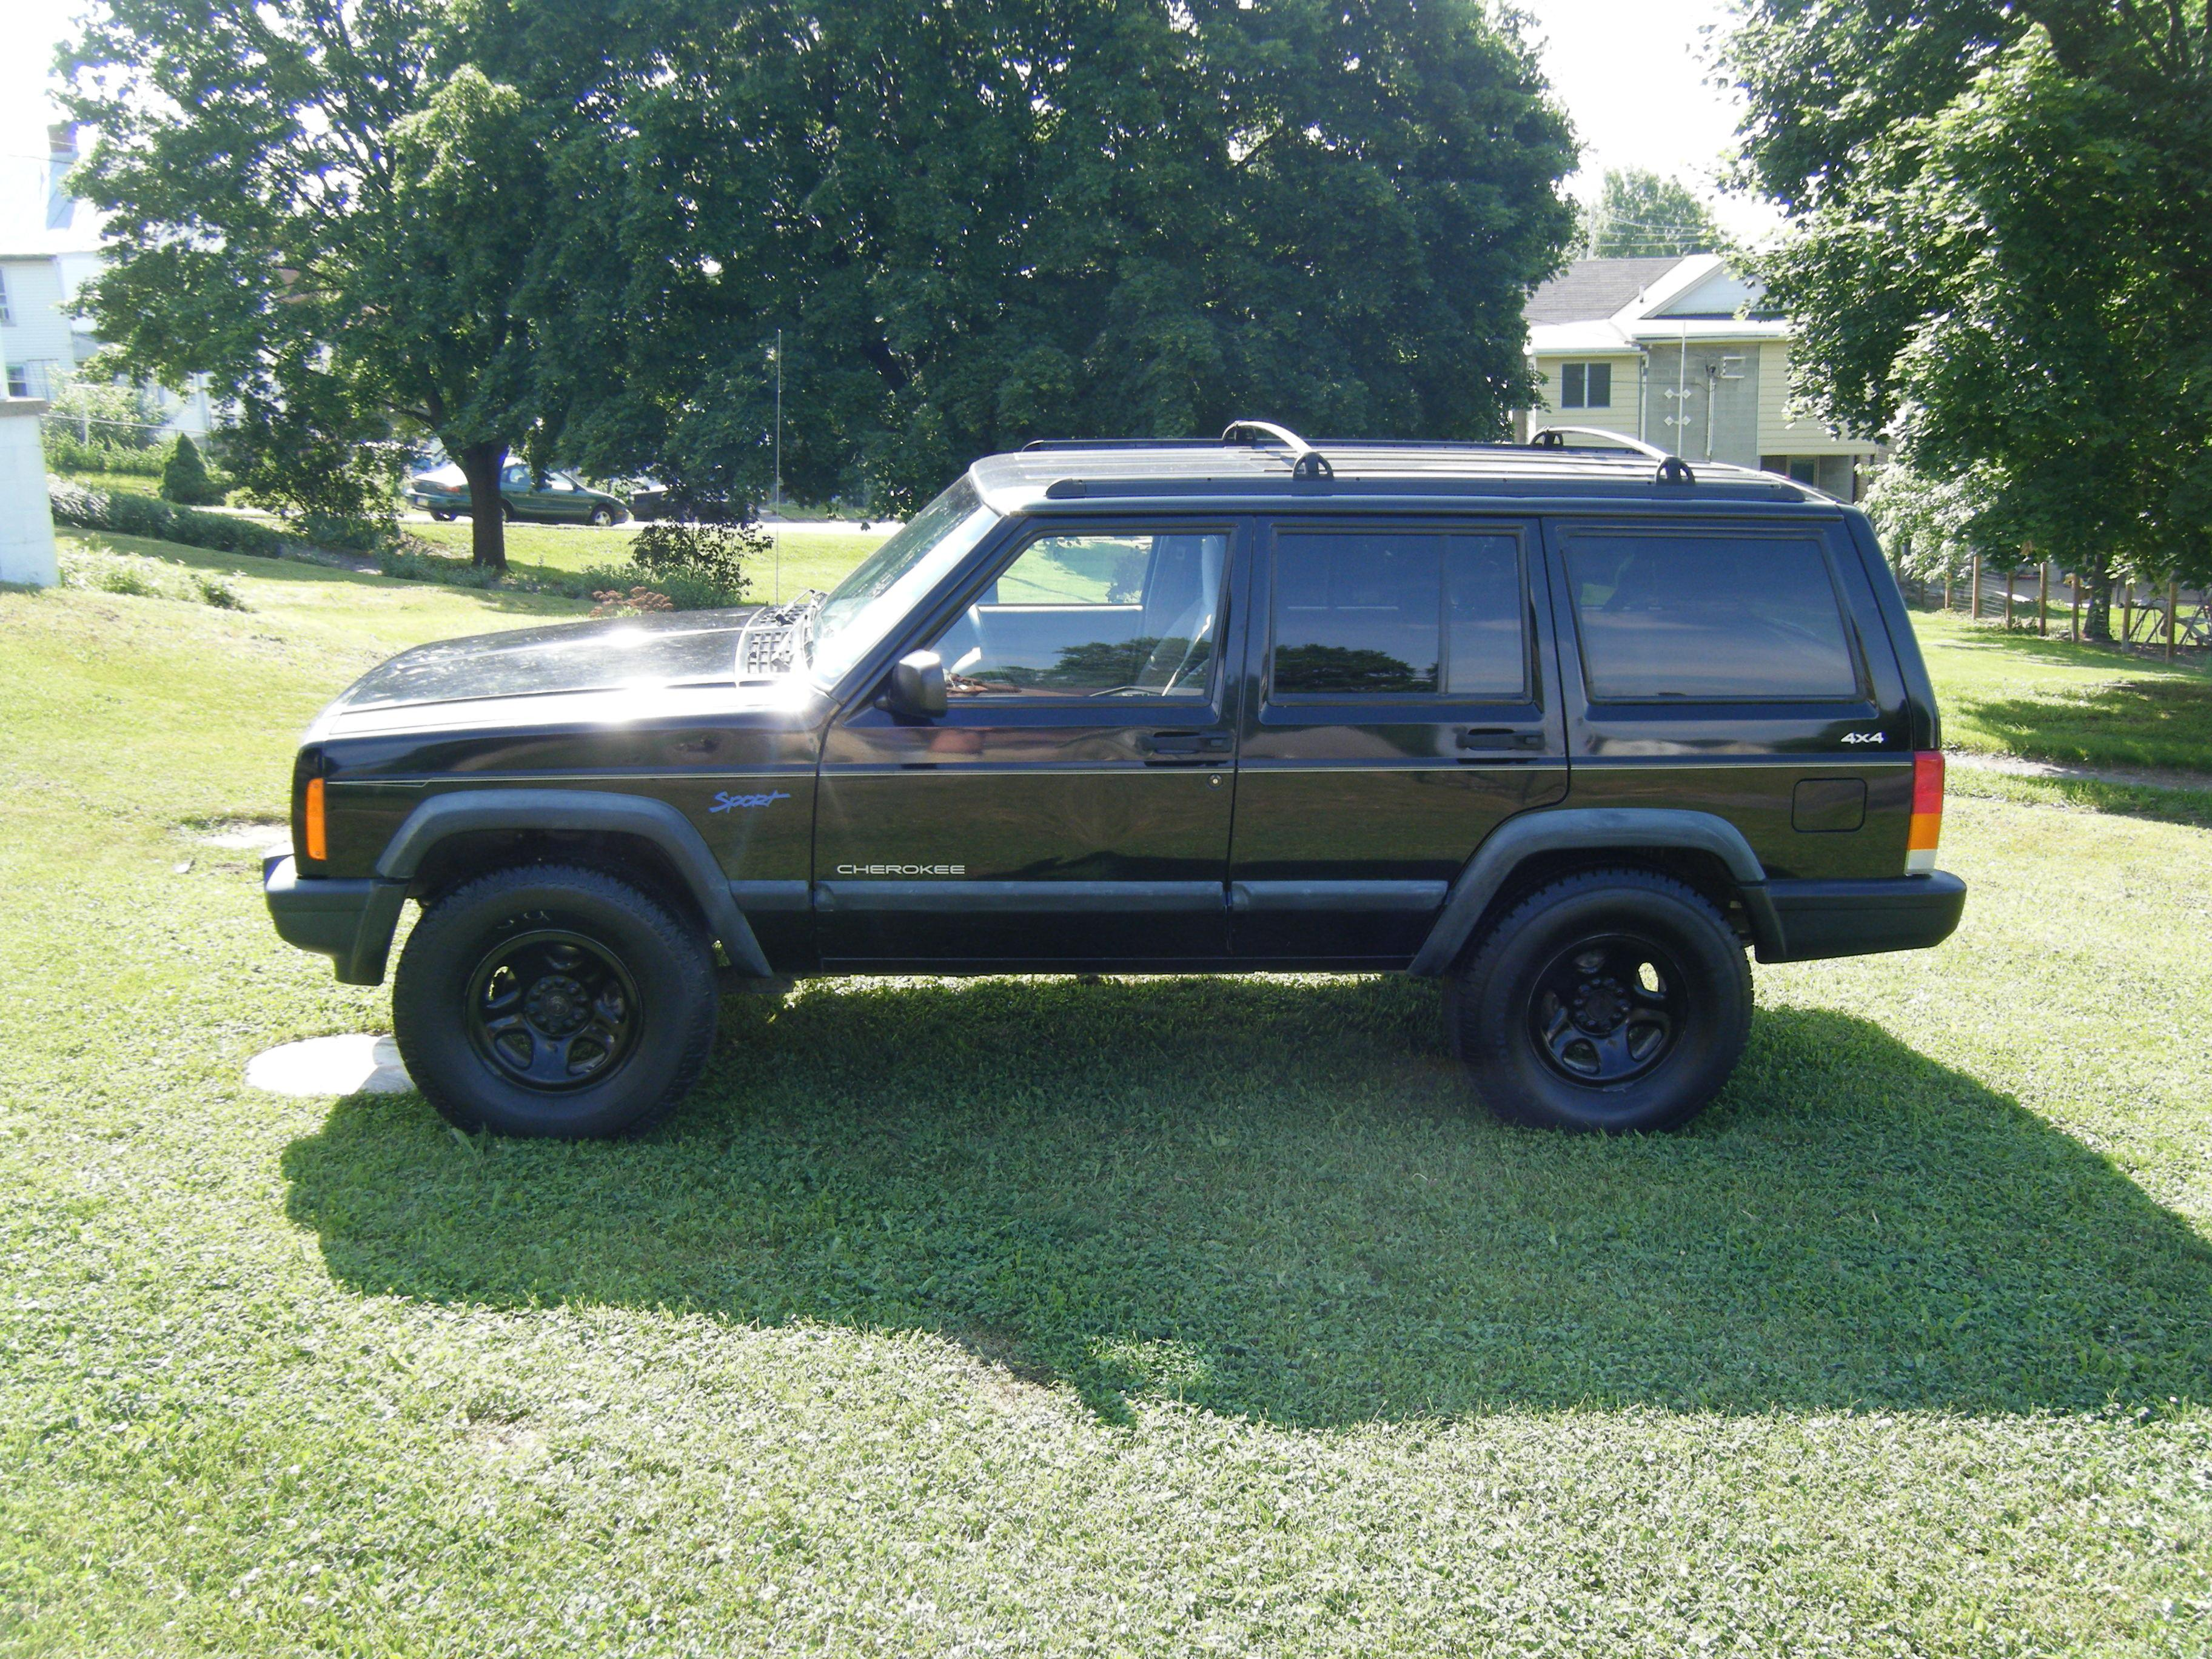 shawn flair 2000 jeep cherokeesport 2d specs photos. Black Bedroom Furniture Sets. Home Design Ideas